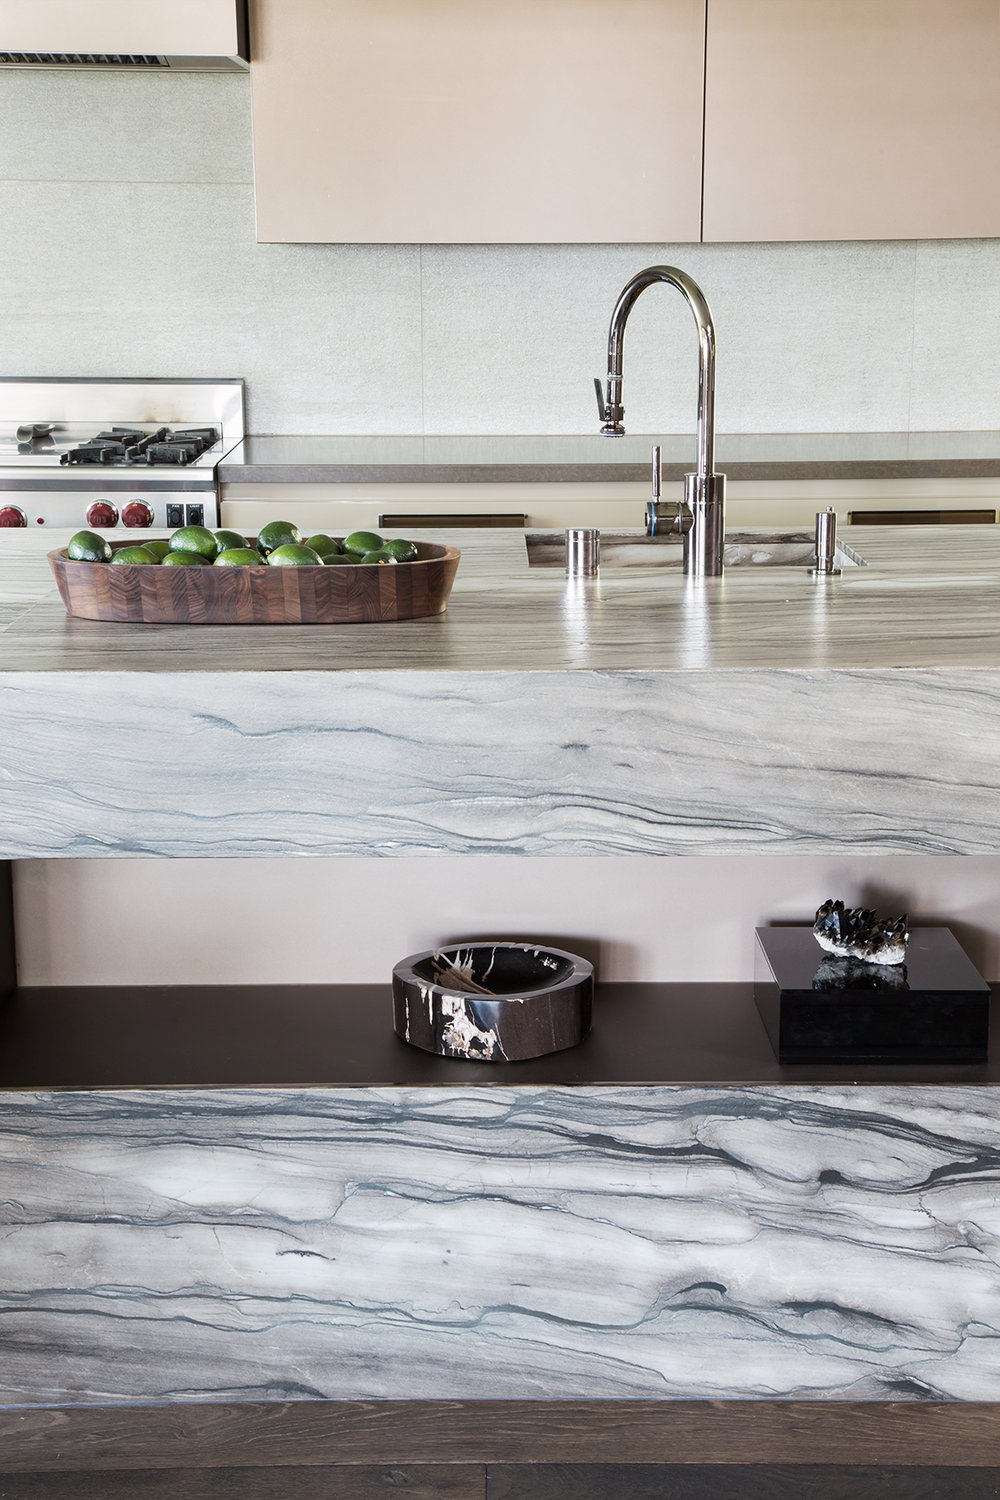 3_CooperPacific_belairN_KitchenSinkDetail_V1_WEB.jpg